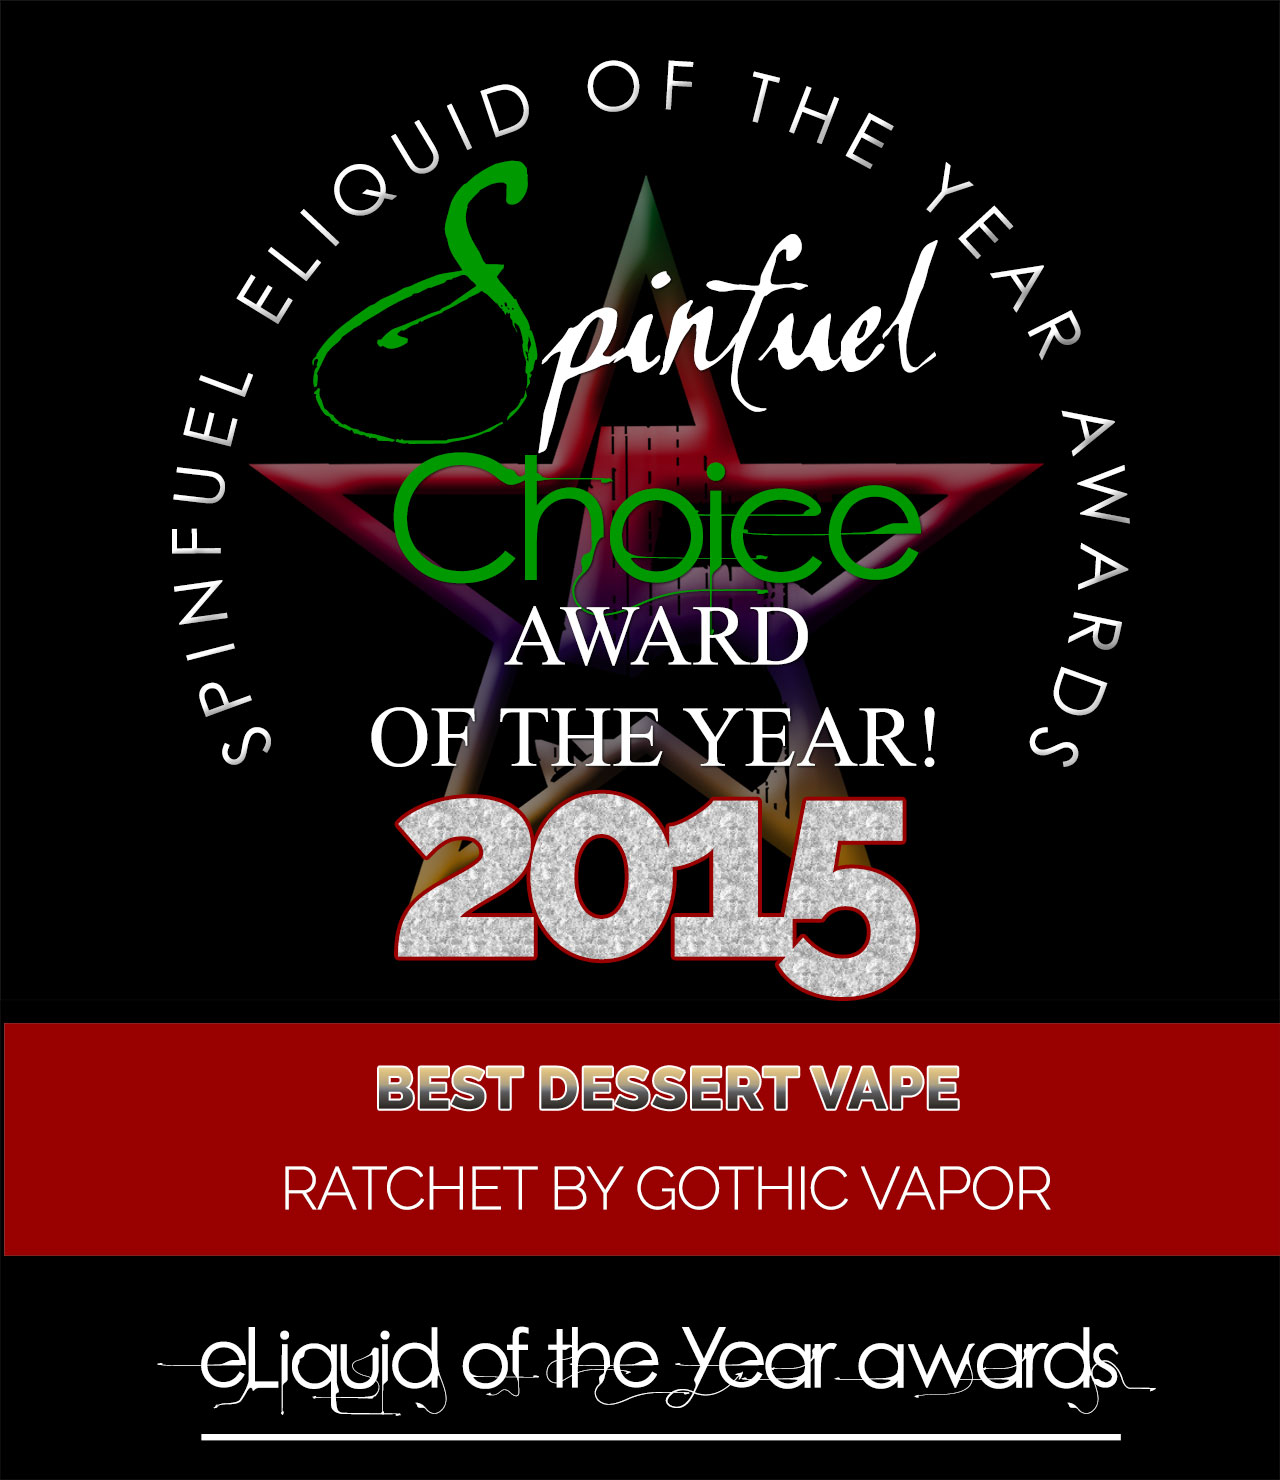 RATHAT-DESSERT-GOTHIC - Spinfuel Choice Award